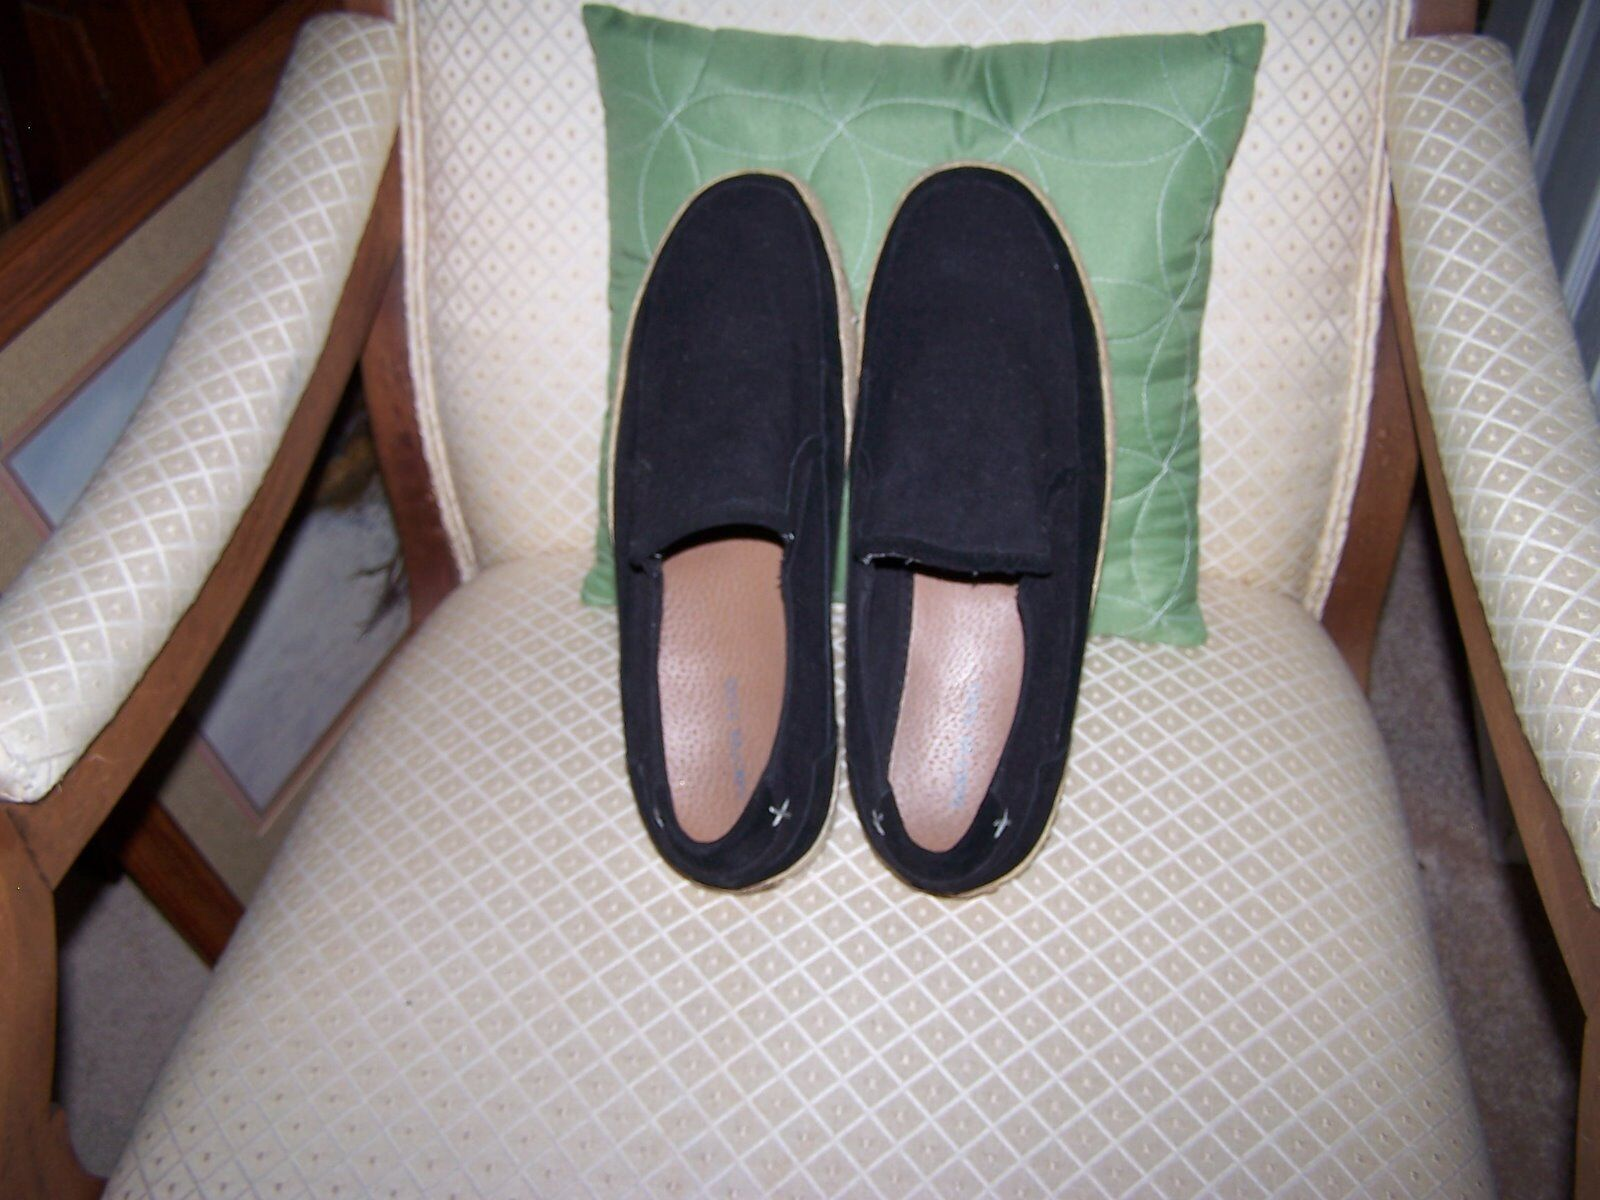 SACHA TOO Casual Shoes Men's Slip-on Canvas w/Leather Trim  Shoes Casual size 10M 4f5814